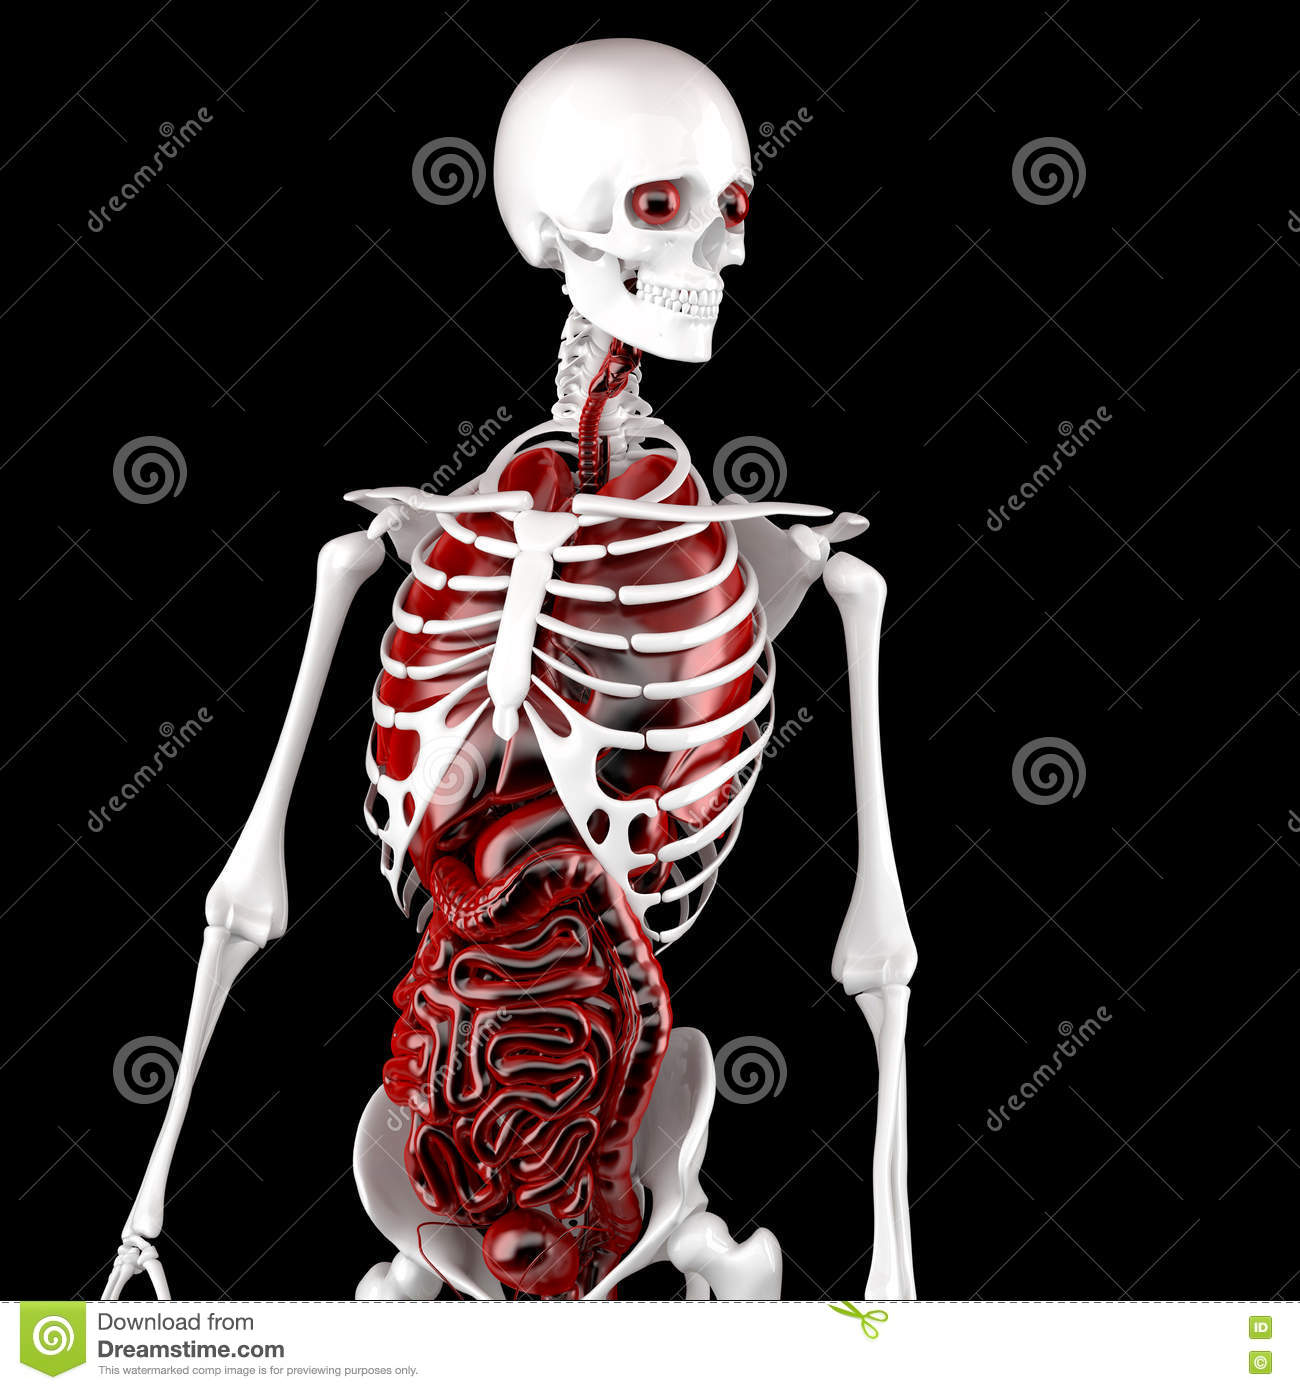 Human Male Anatomy Skeleton And Internal Organs 3d Illustration